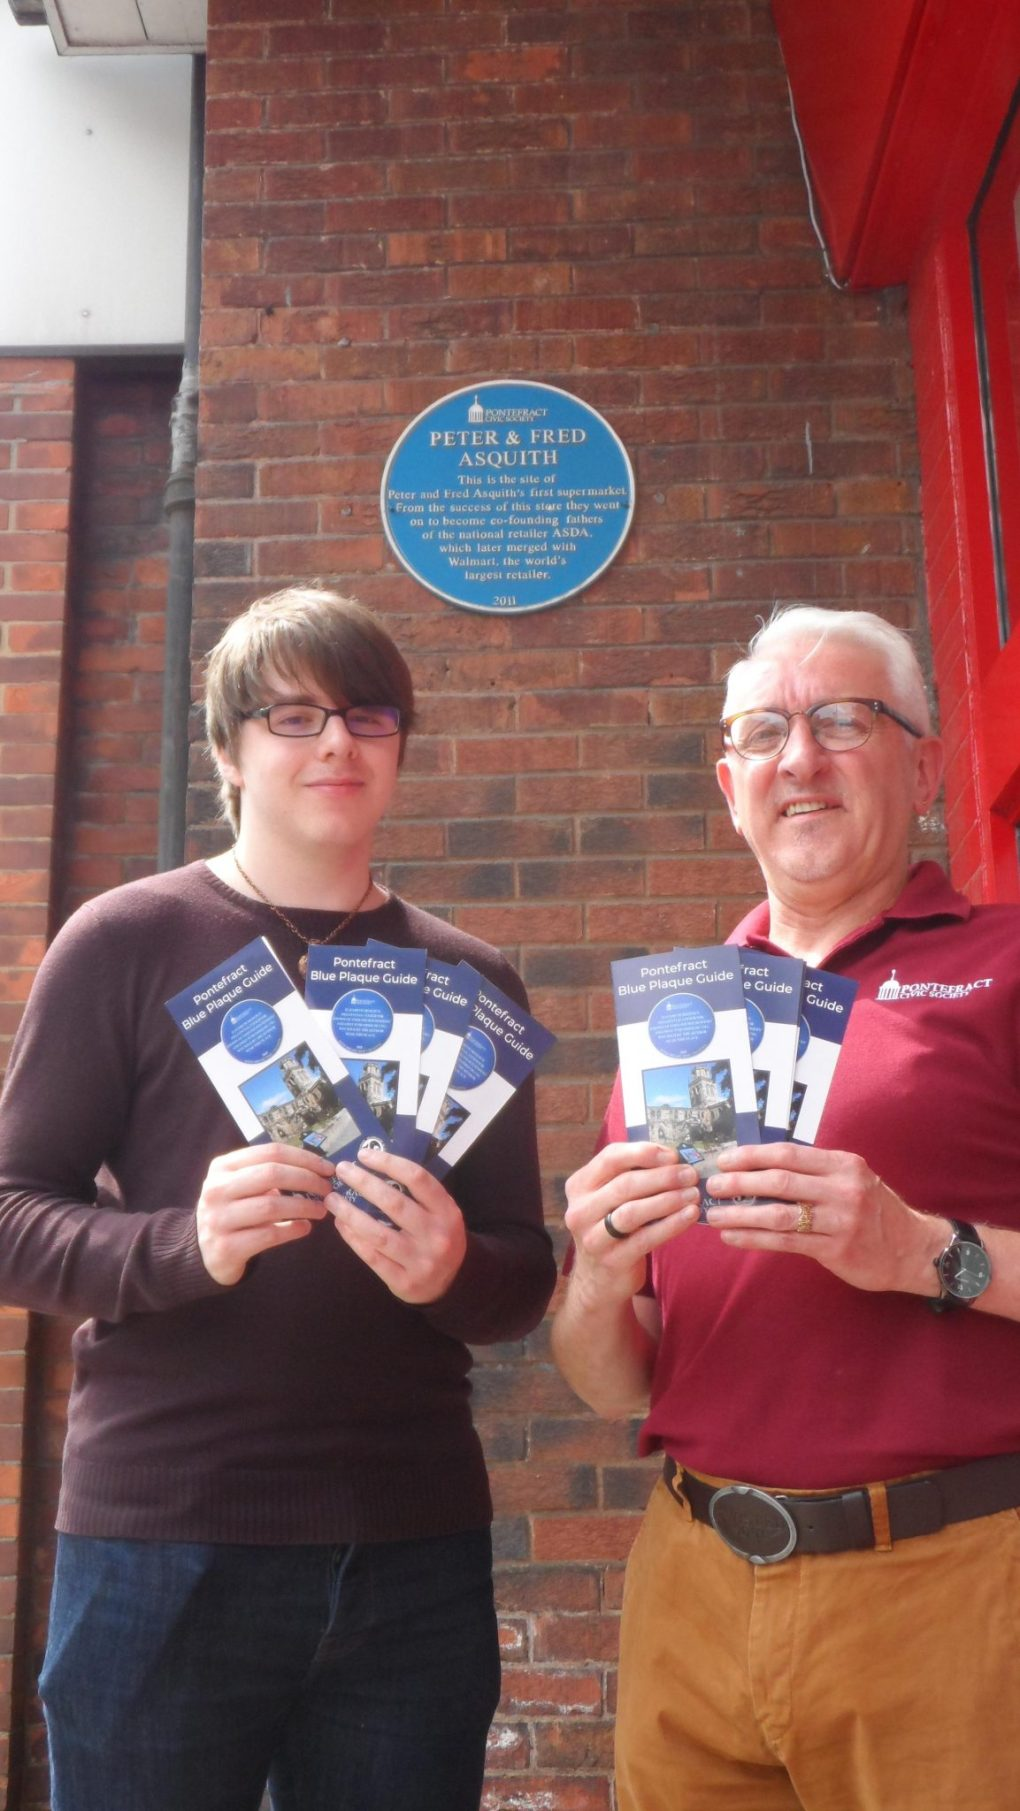 Chairman Paul Cartwright and volunteer Jaydn Edwards standing together, holding the new Blue Plaque Guides by the Peter and Fred Asquith plaque.